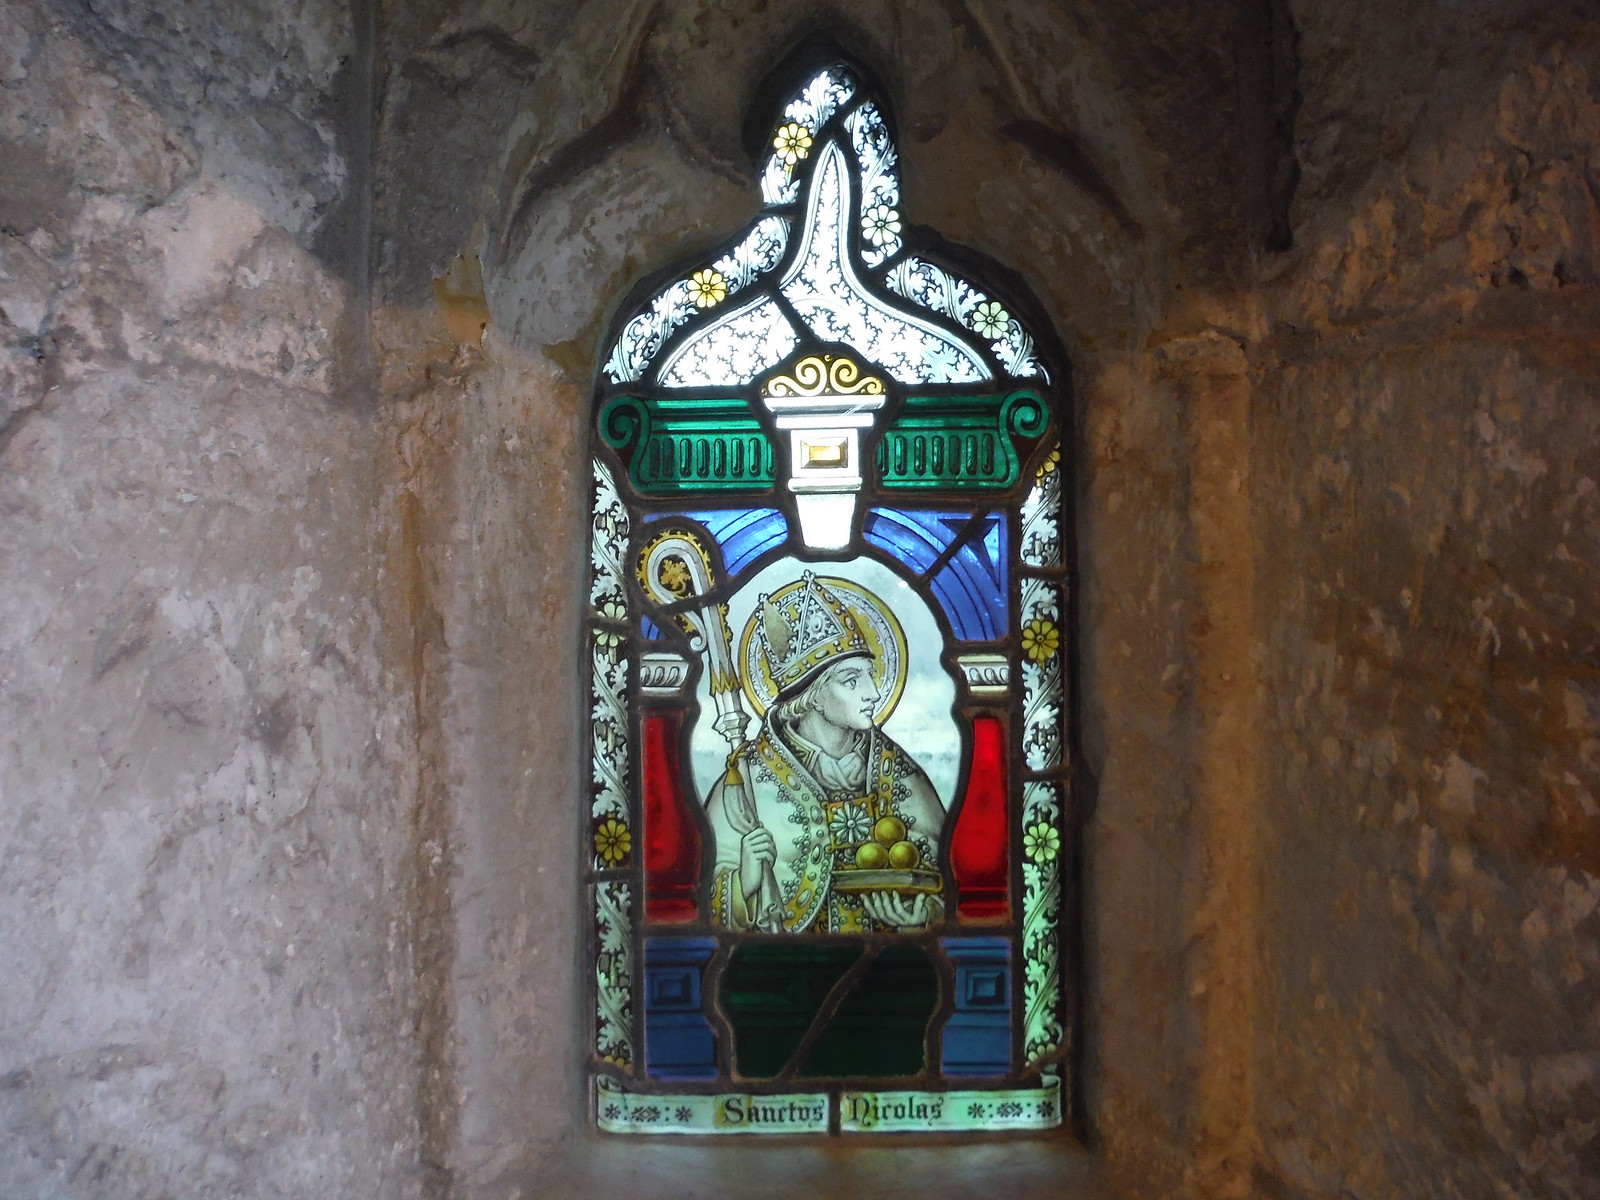 St. Nicholas stained glass window in porch of St. Margaret the Queen, Buxted Park SWC Walk 262 Uckfield to Buxted